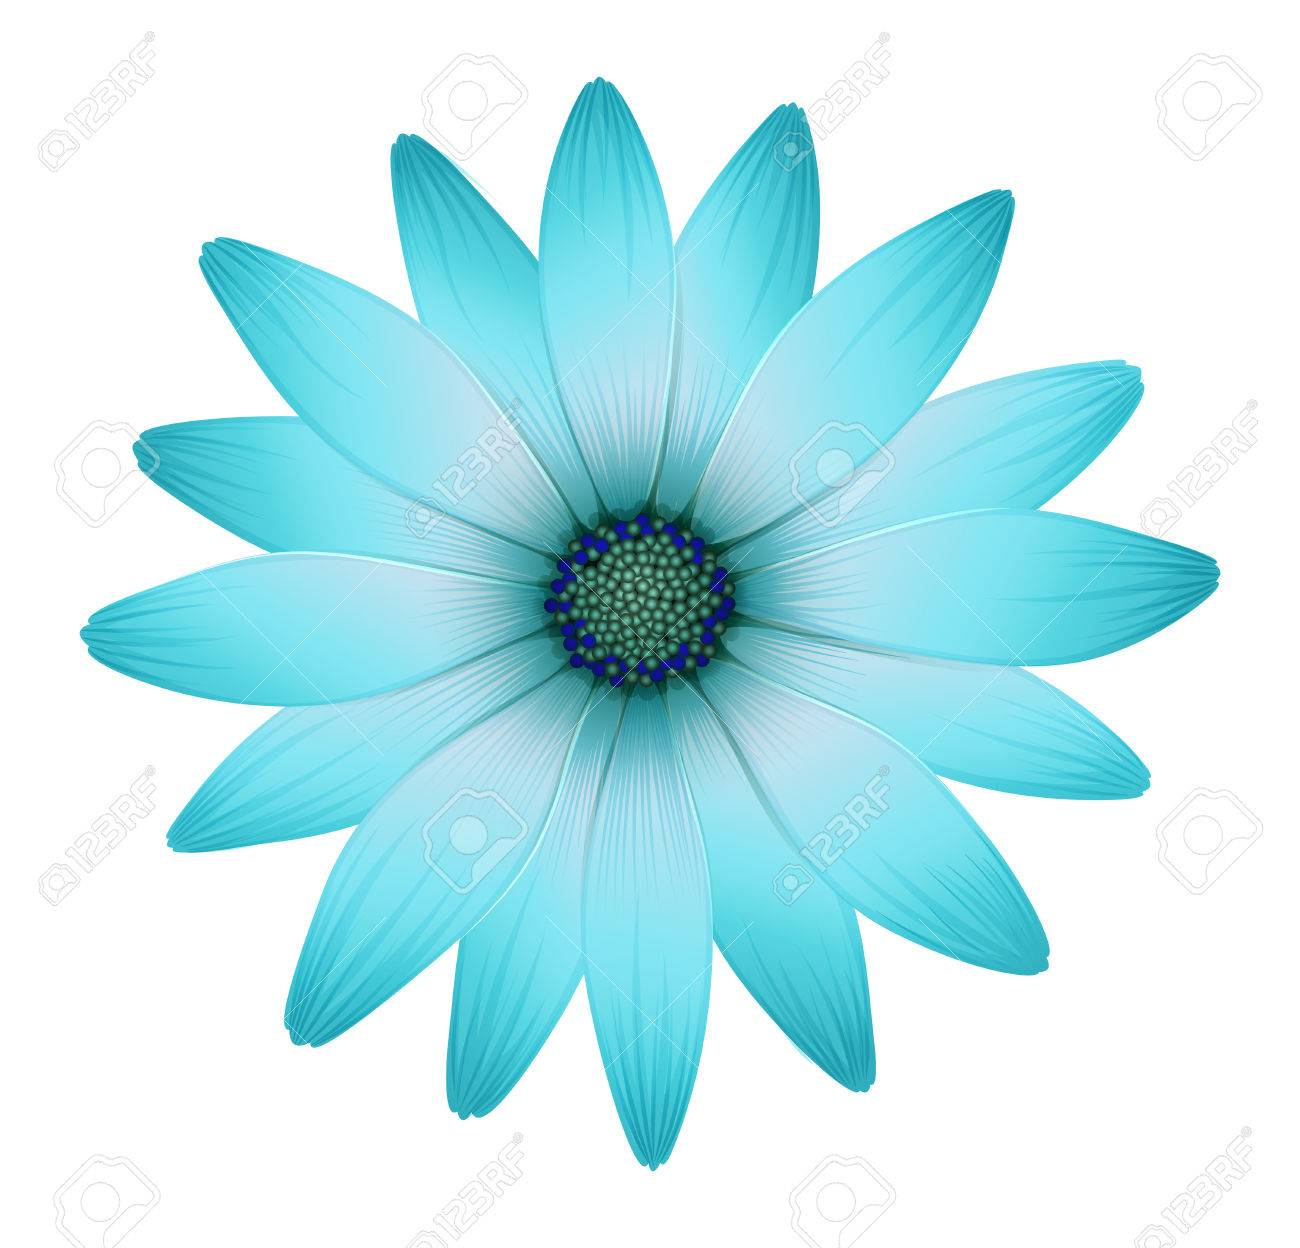 Illustration Of A Beautiful Flower On A White Background Royalty Fri